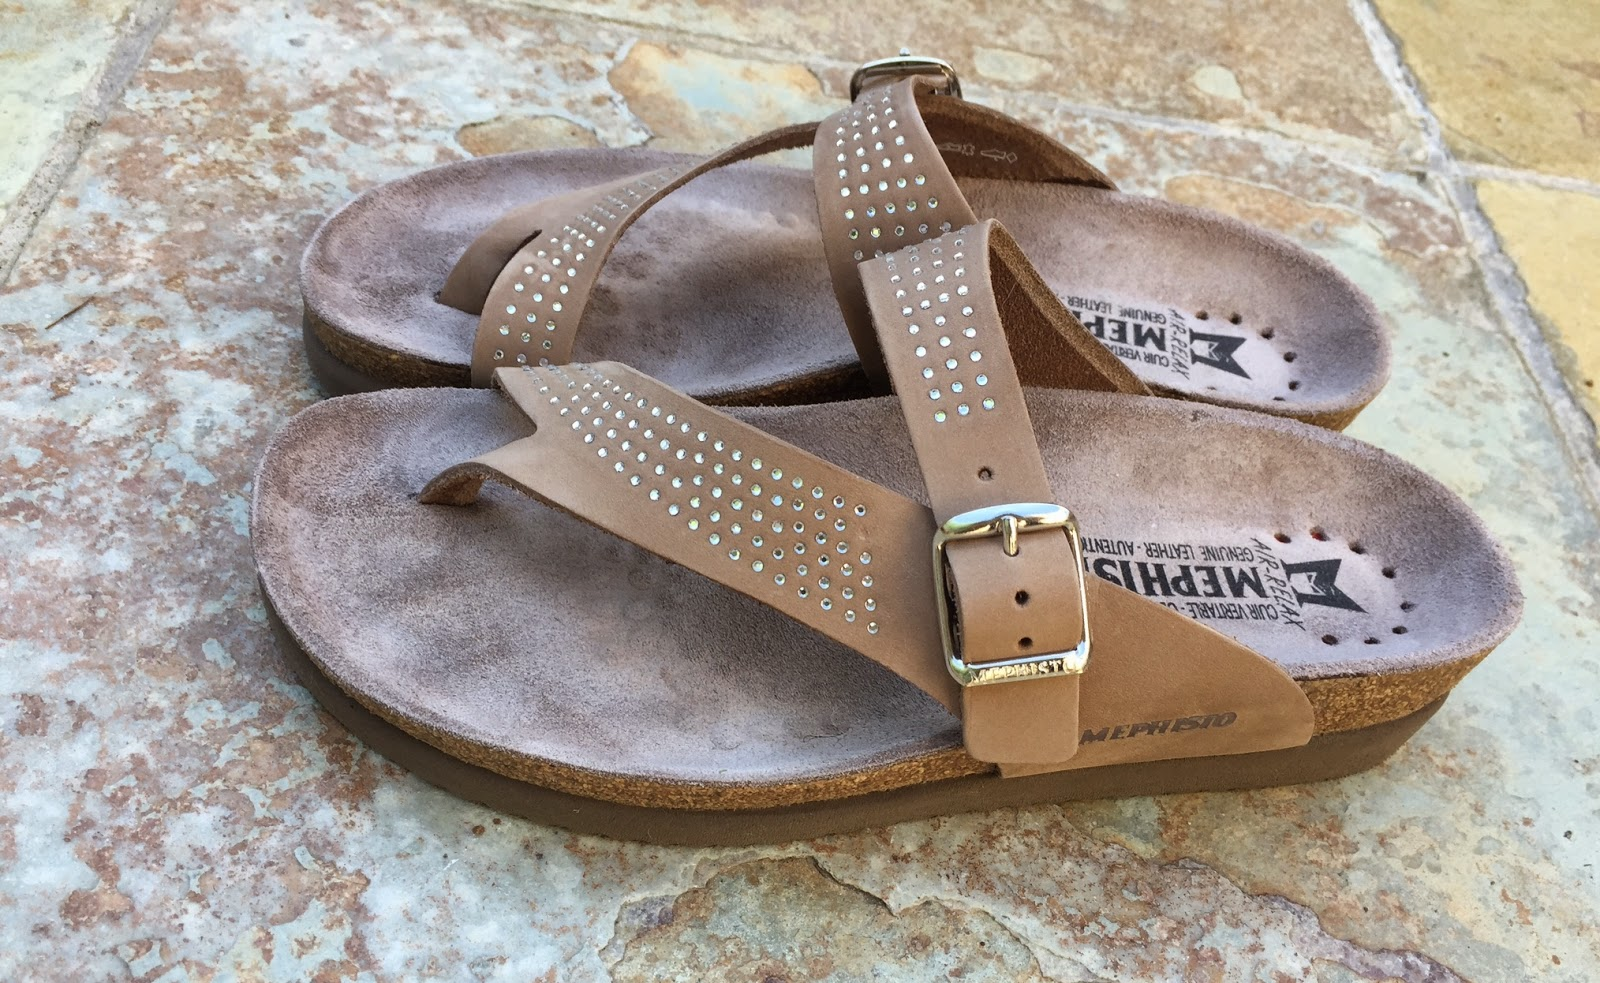 d9178fab6a95 Style + Comfort  Mephisto Footwear Review - Fashion Should Be Fun